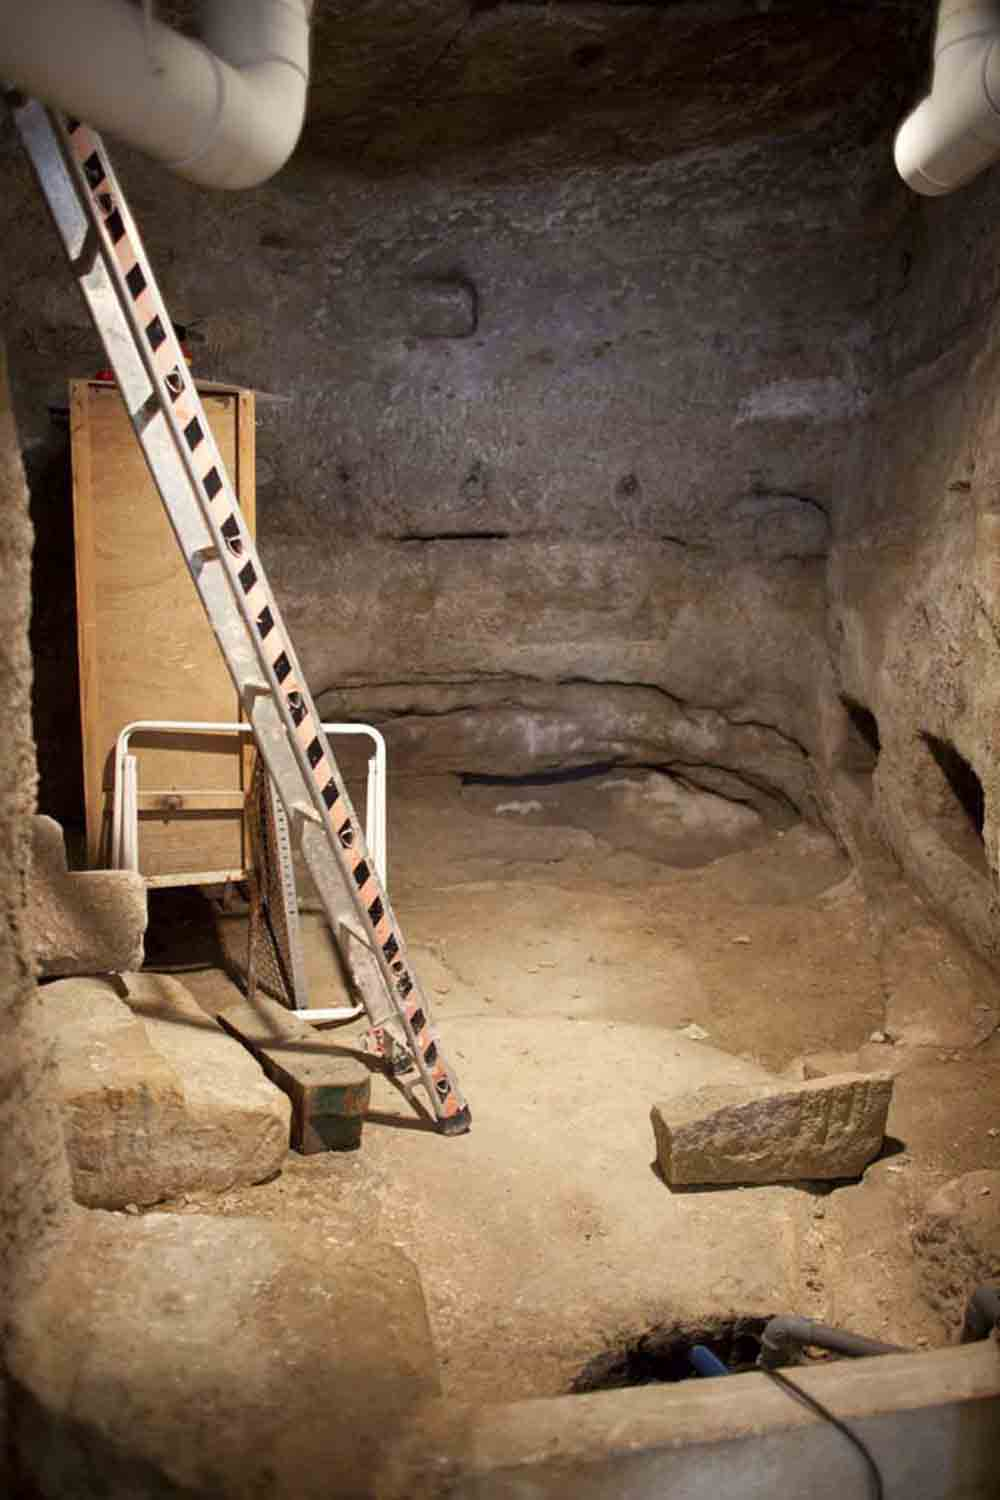 Neolithic Cistern, Lacoste, France, 2014